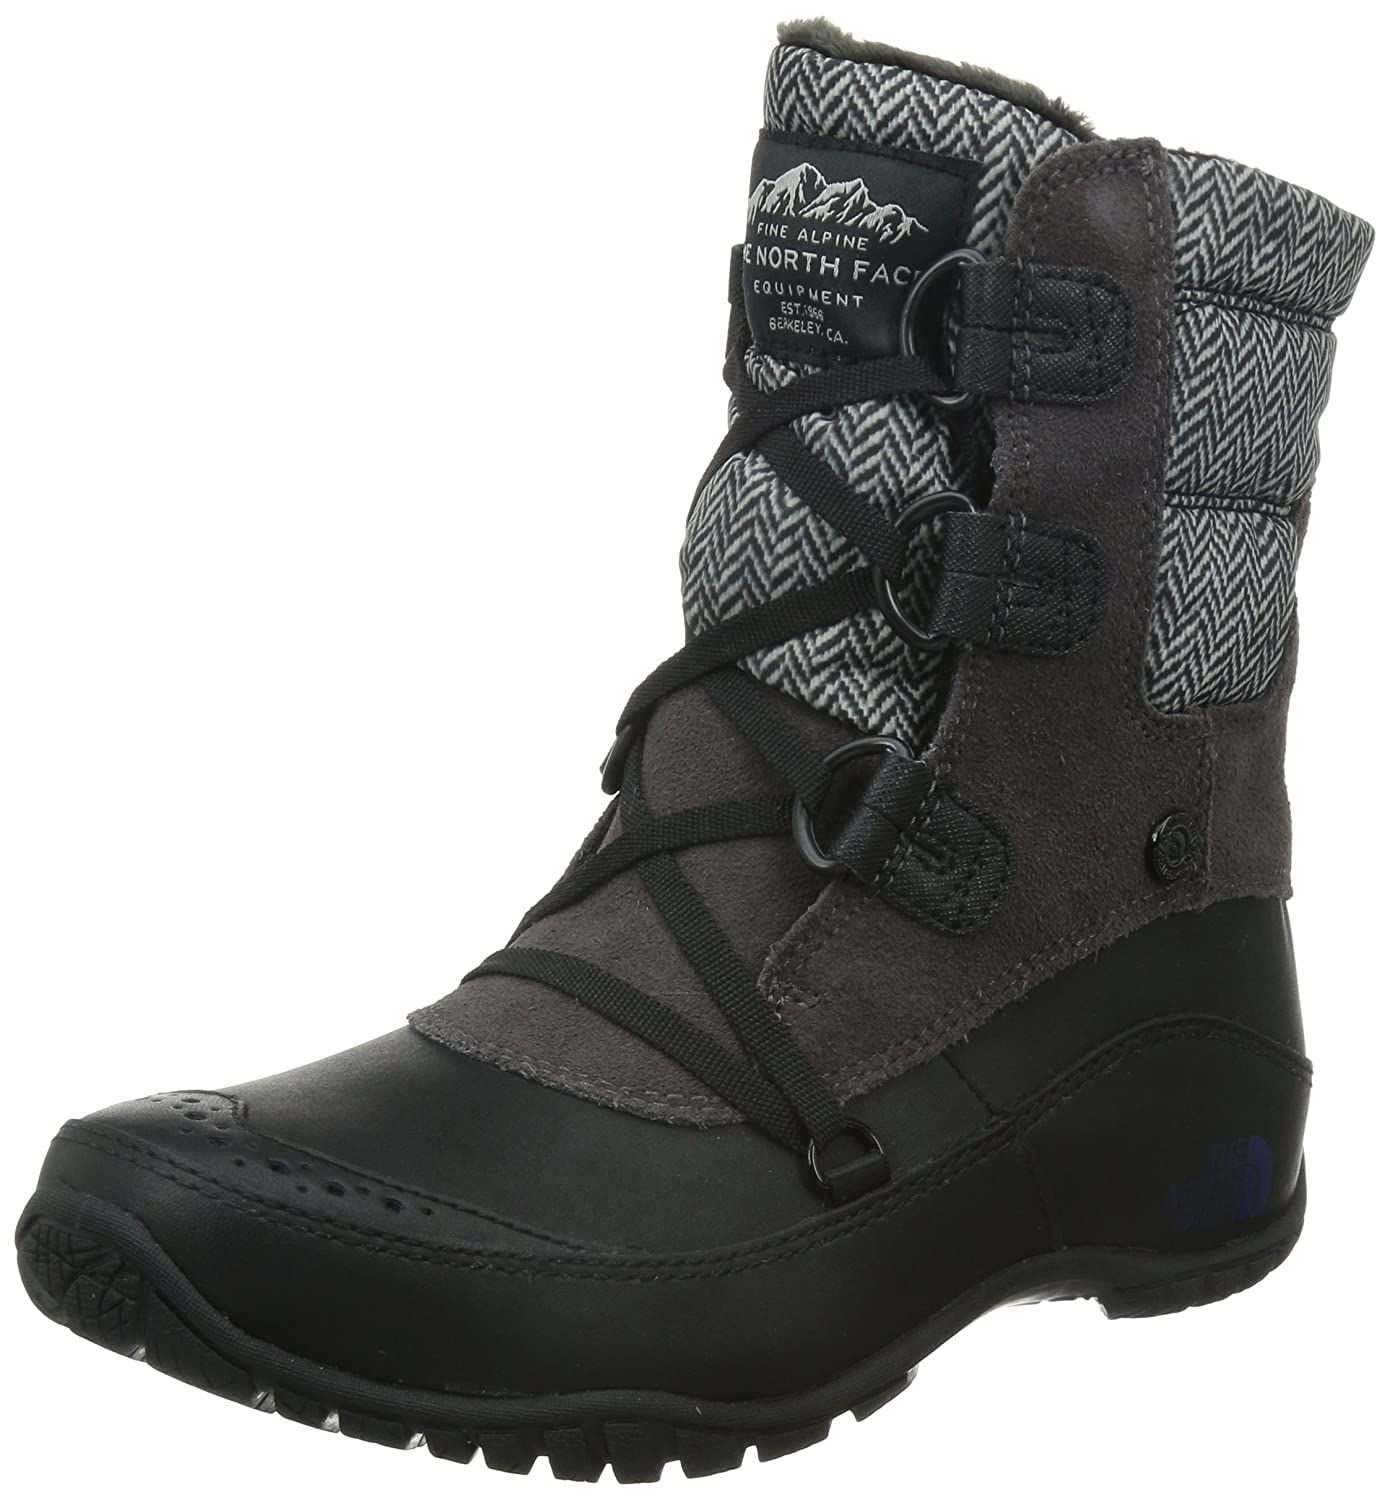 The North Face Nuptse Purna Shorty Boot Women's B00RW5N9BS 10.5 B(M) US|Plum Kitten Grey/Astral Aura Blue (Prior Season)